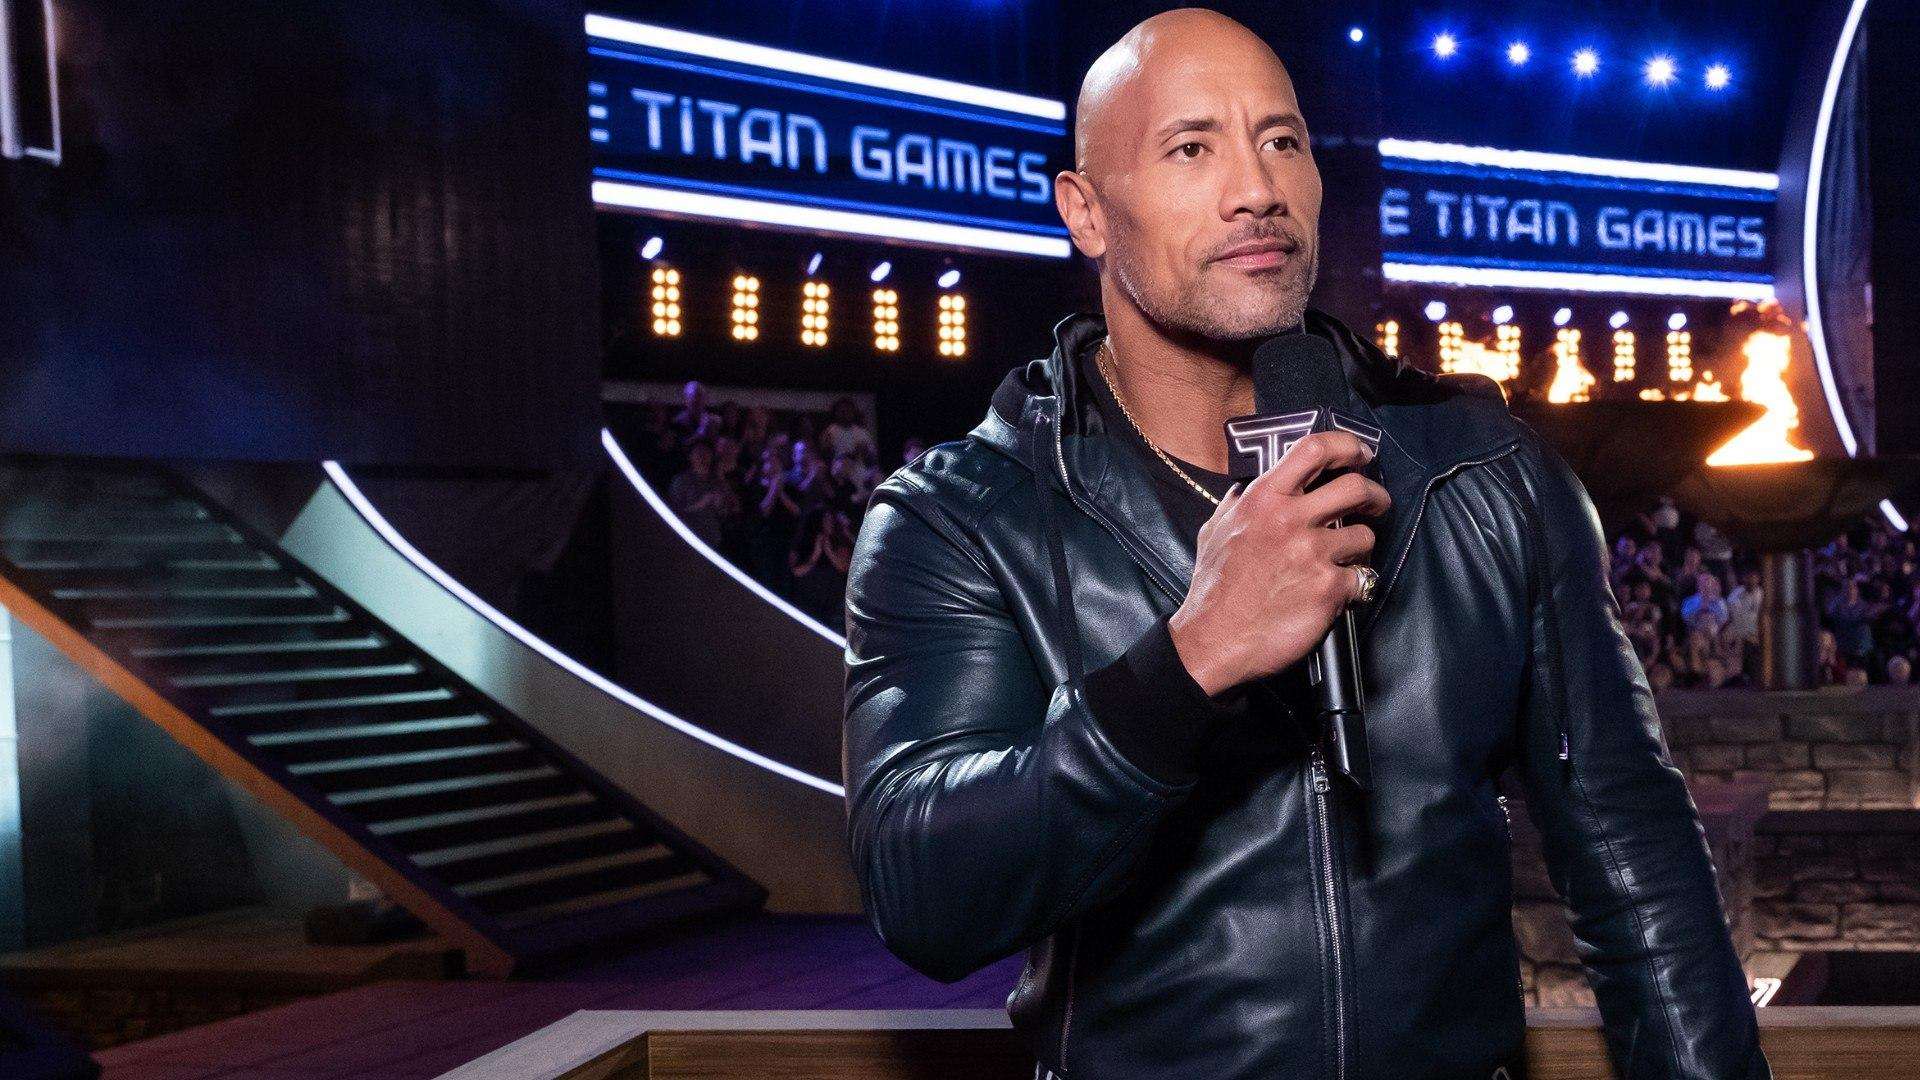 Blaze HD Titan Games con The Rock